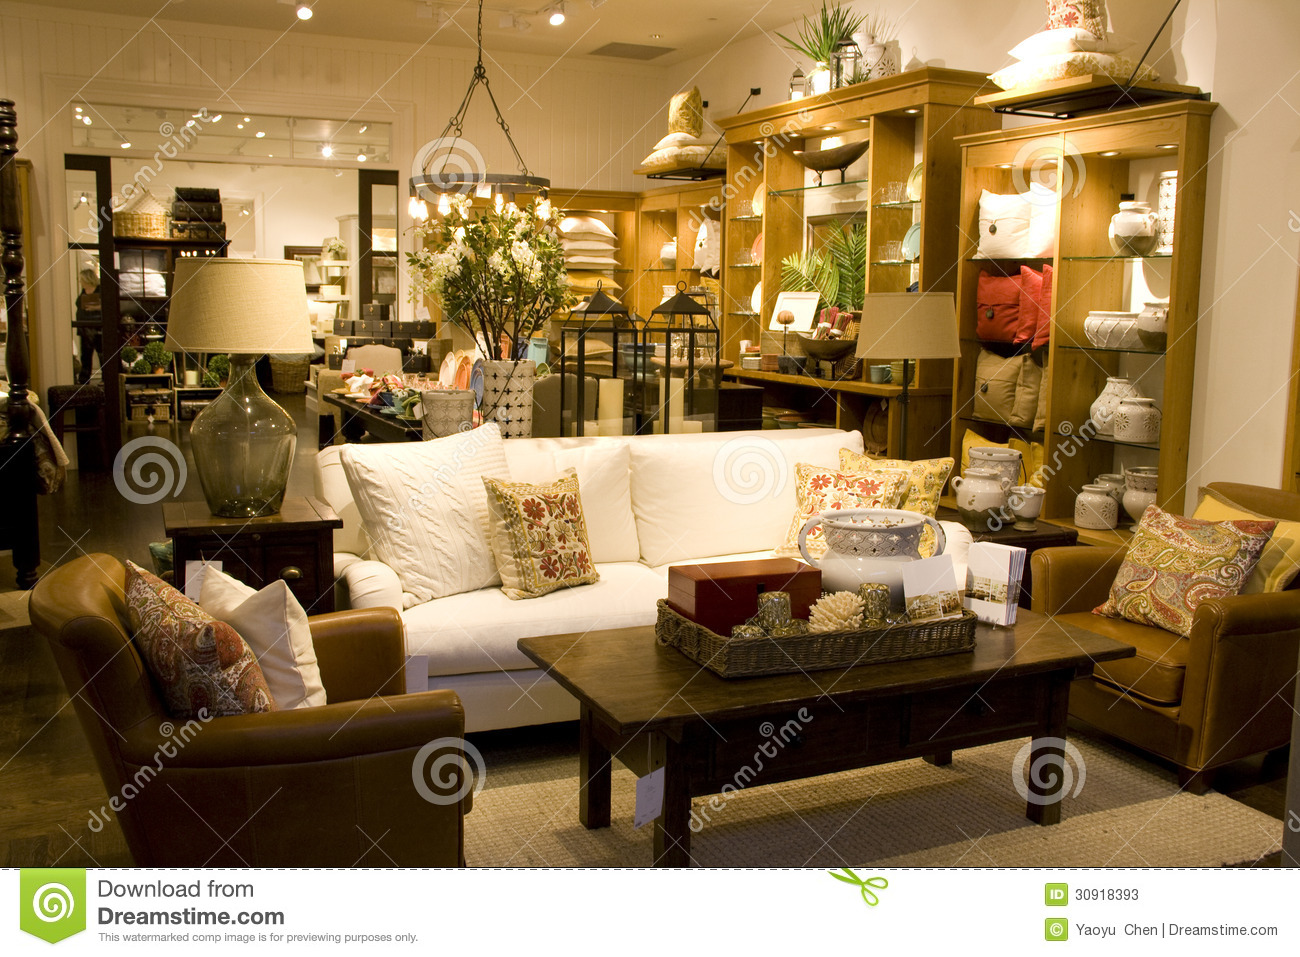 Furniture and home decor store stock image image 30918393 Home design furniture in antioch